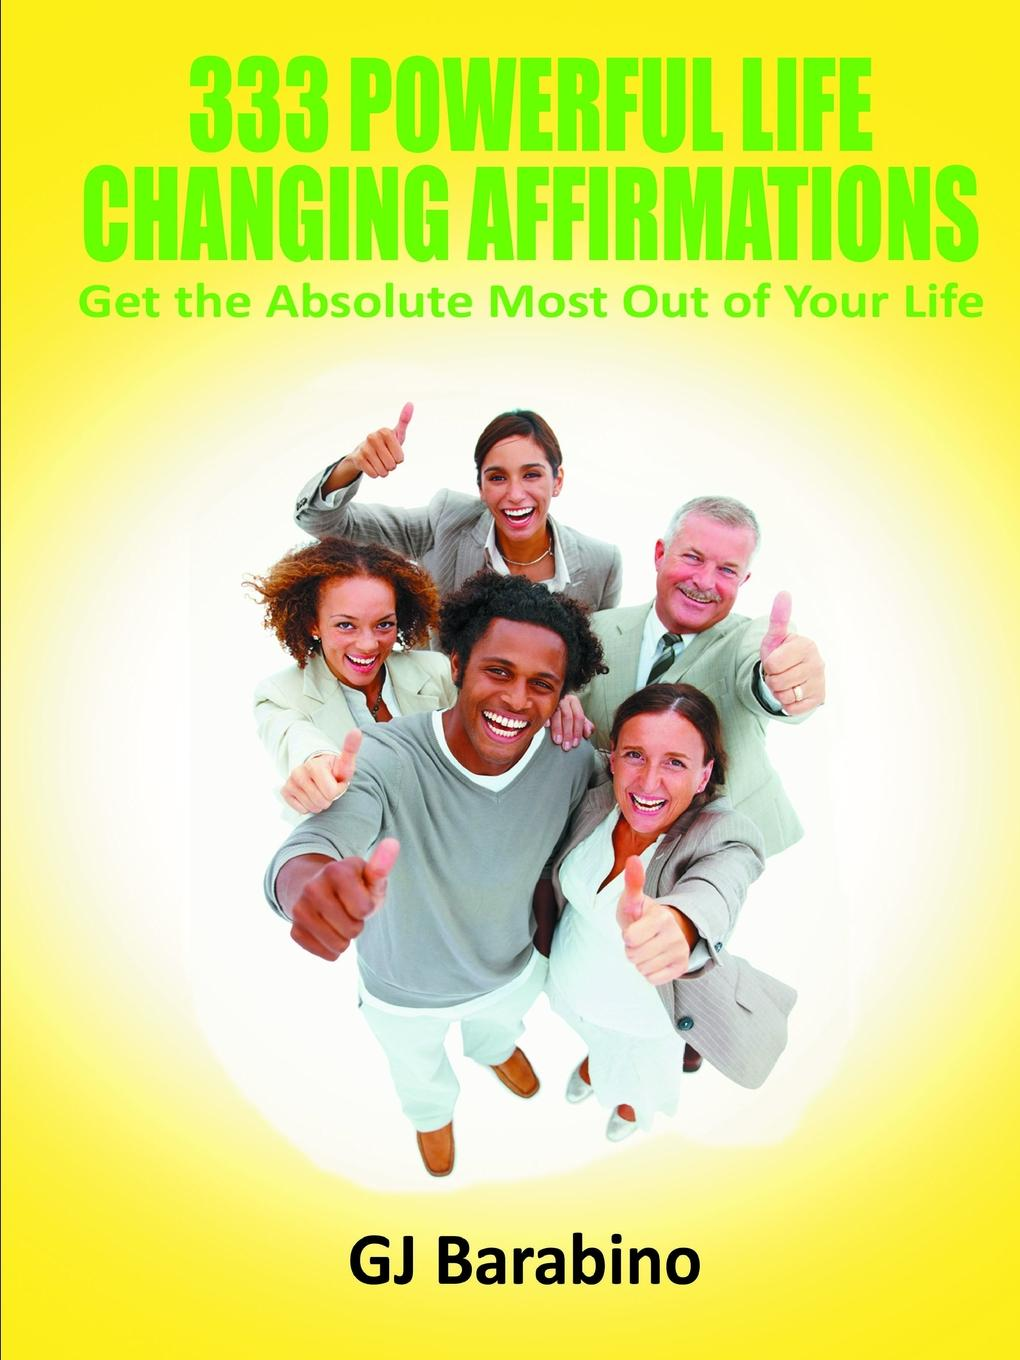 GJ Barabino 333 Powerful Life Changing Affirmations Get the Absolute Most Out of Your Life the road to a positive life